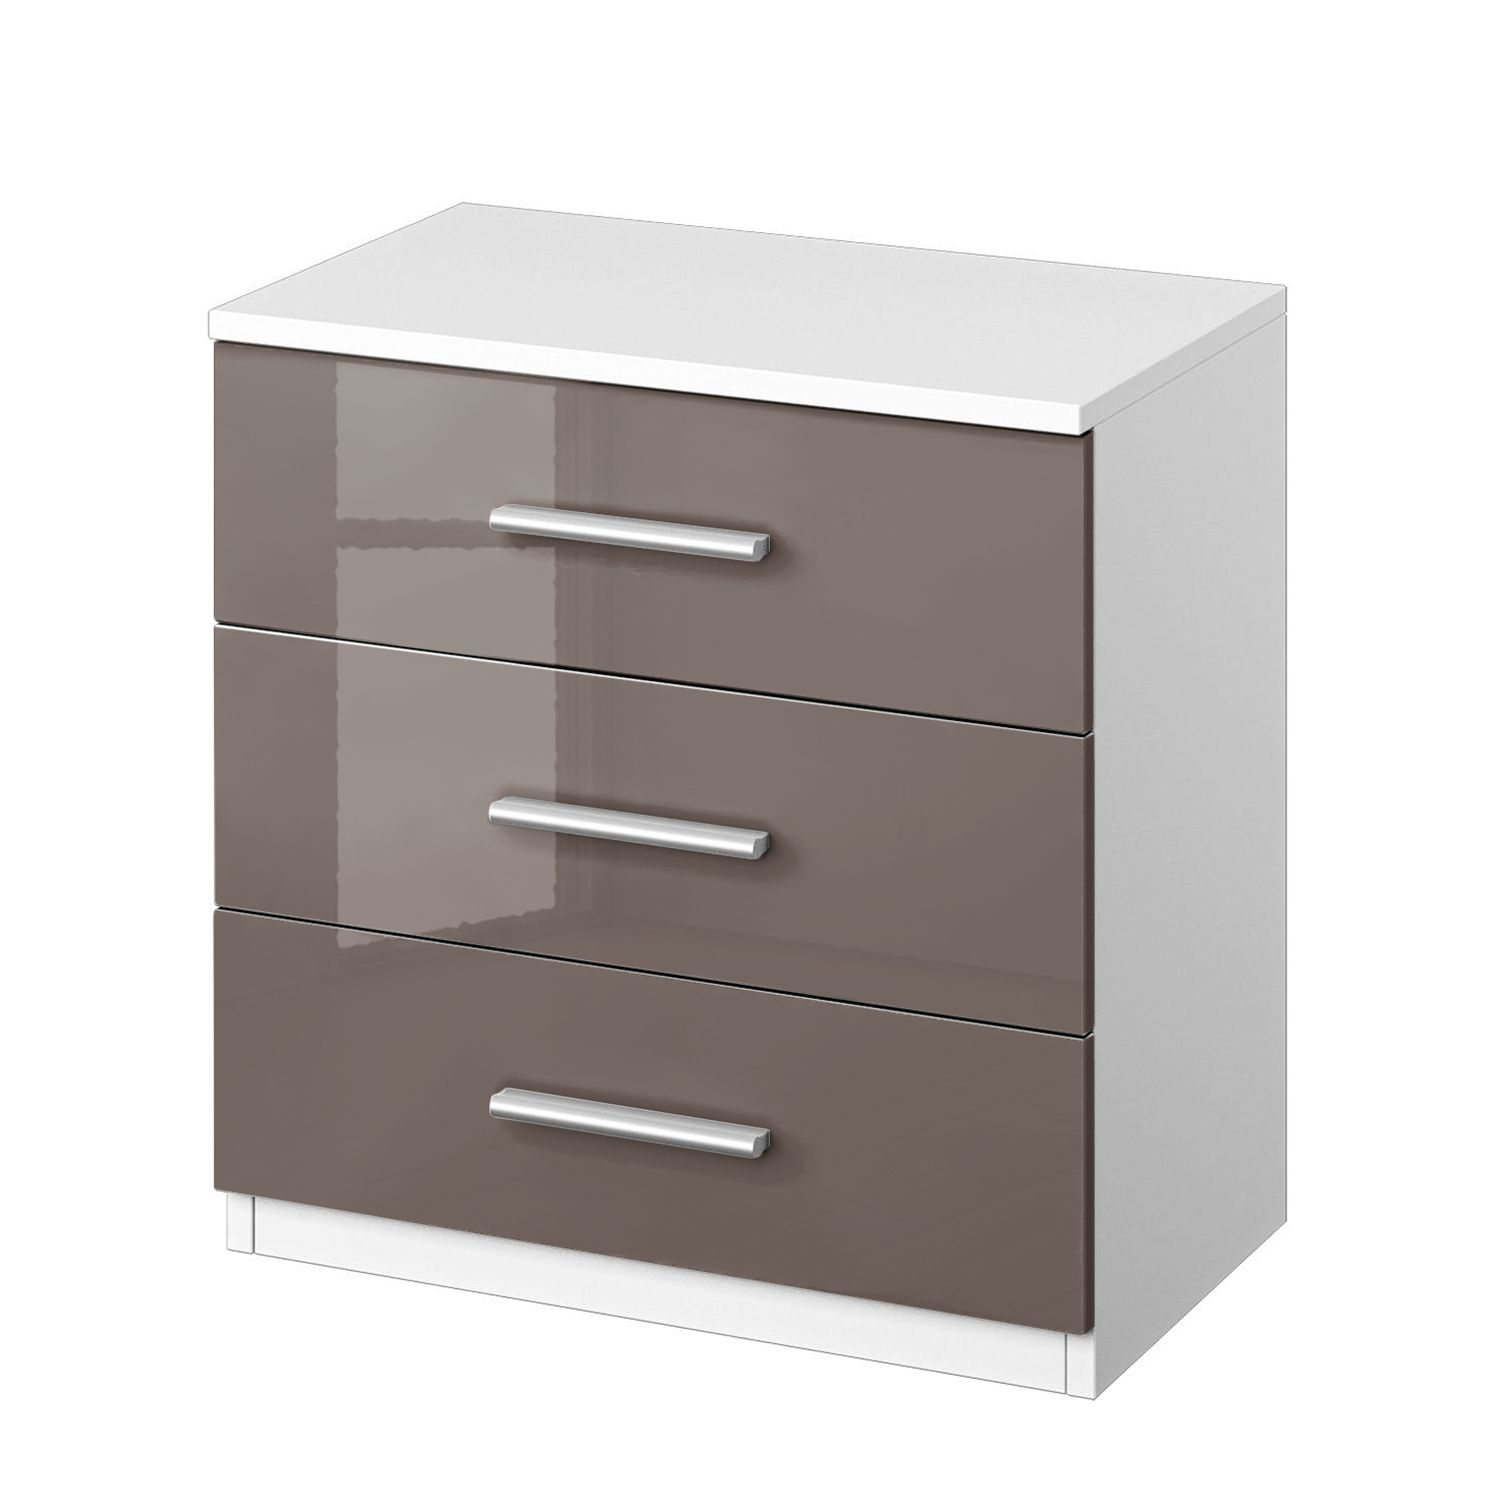 Comodino Celle I - Bianco alpino/Color grigio lava lucido, Rauch Packs